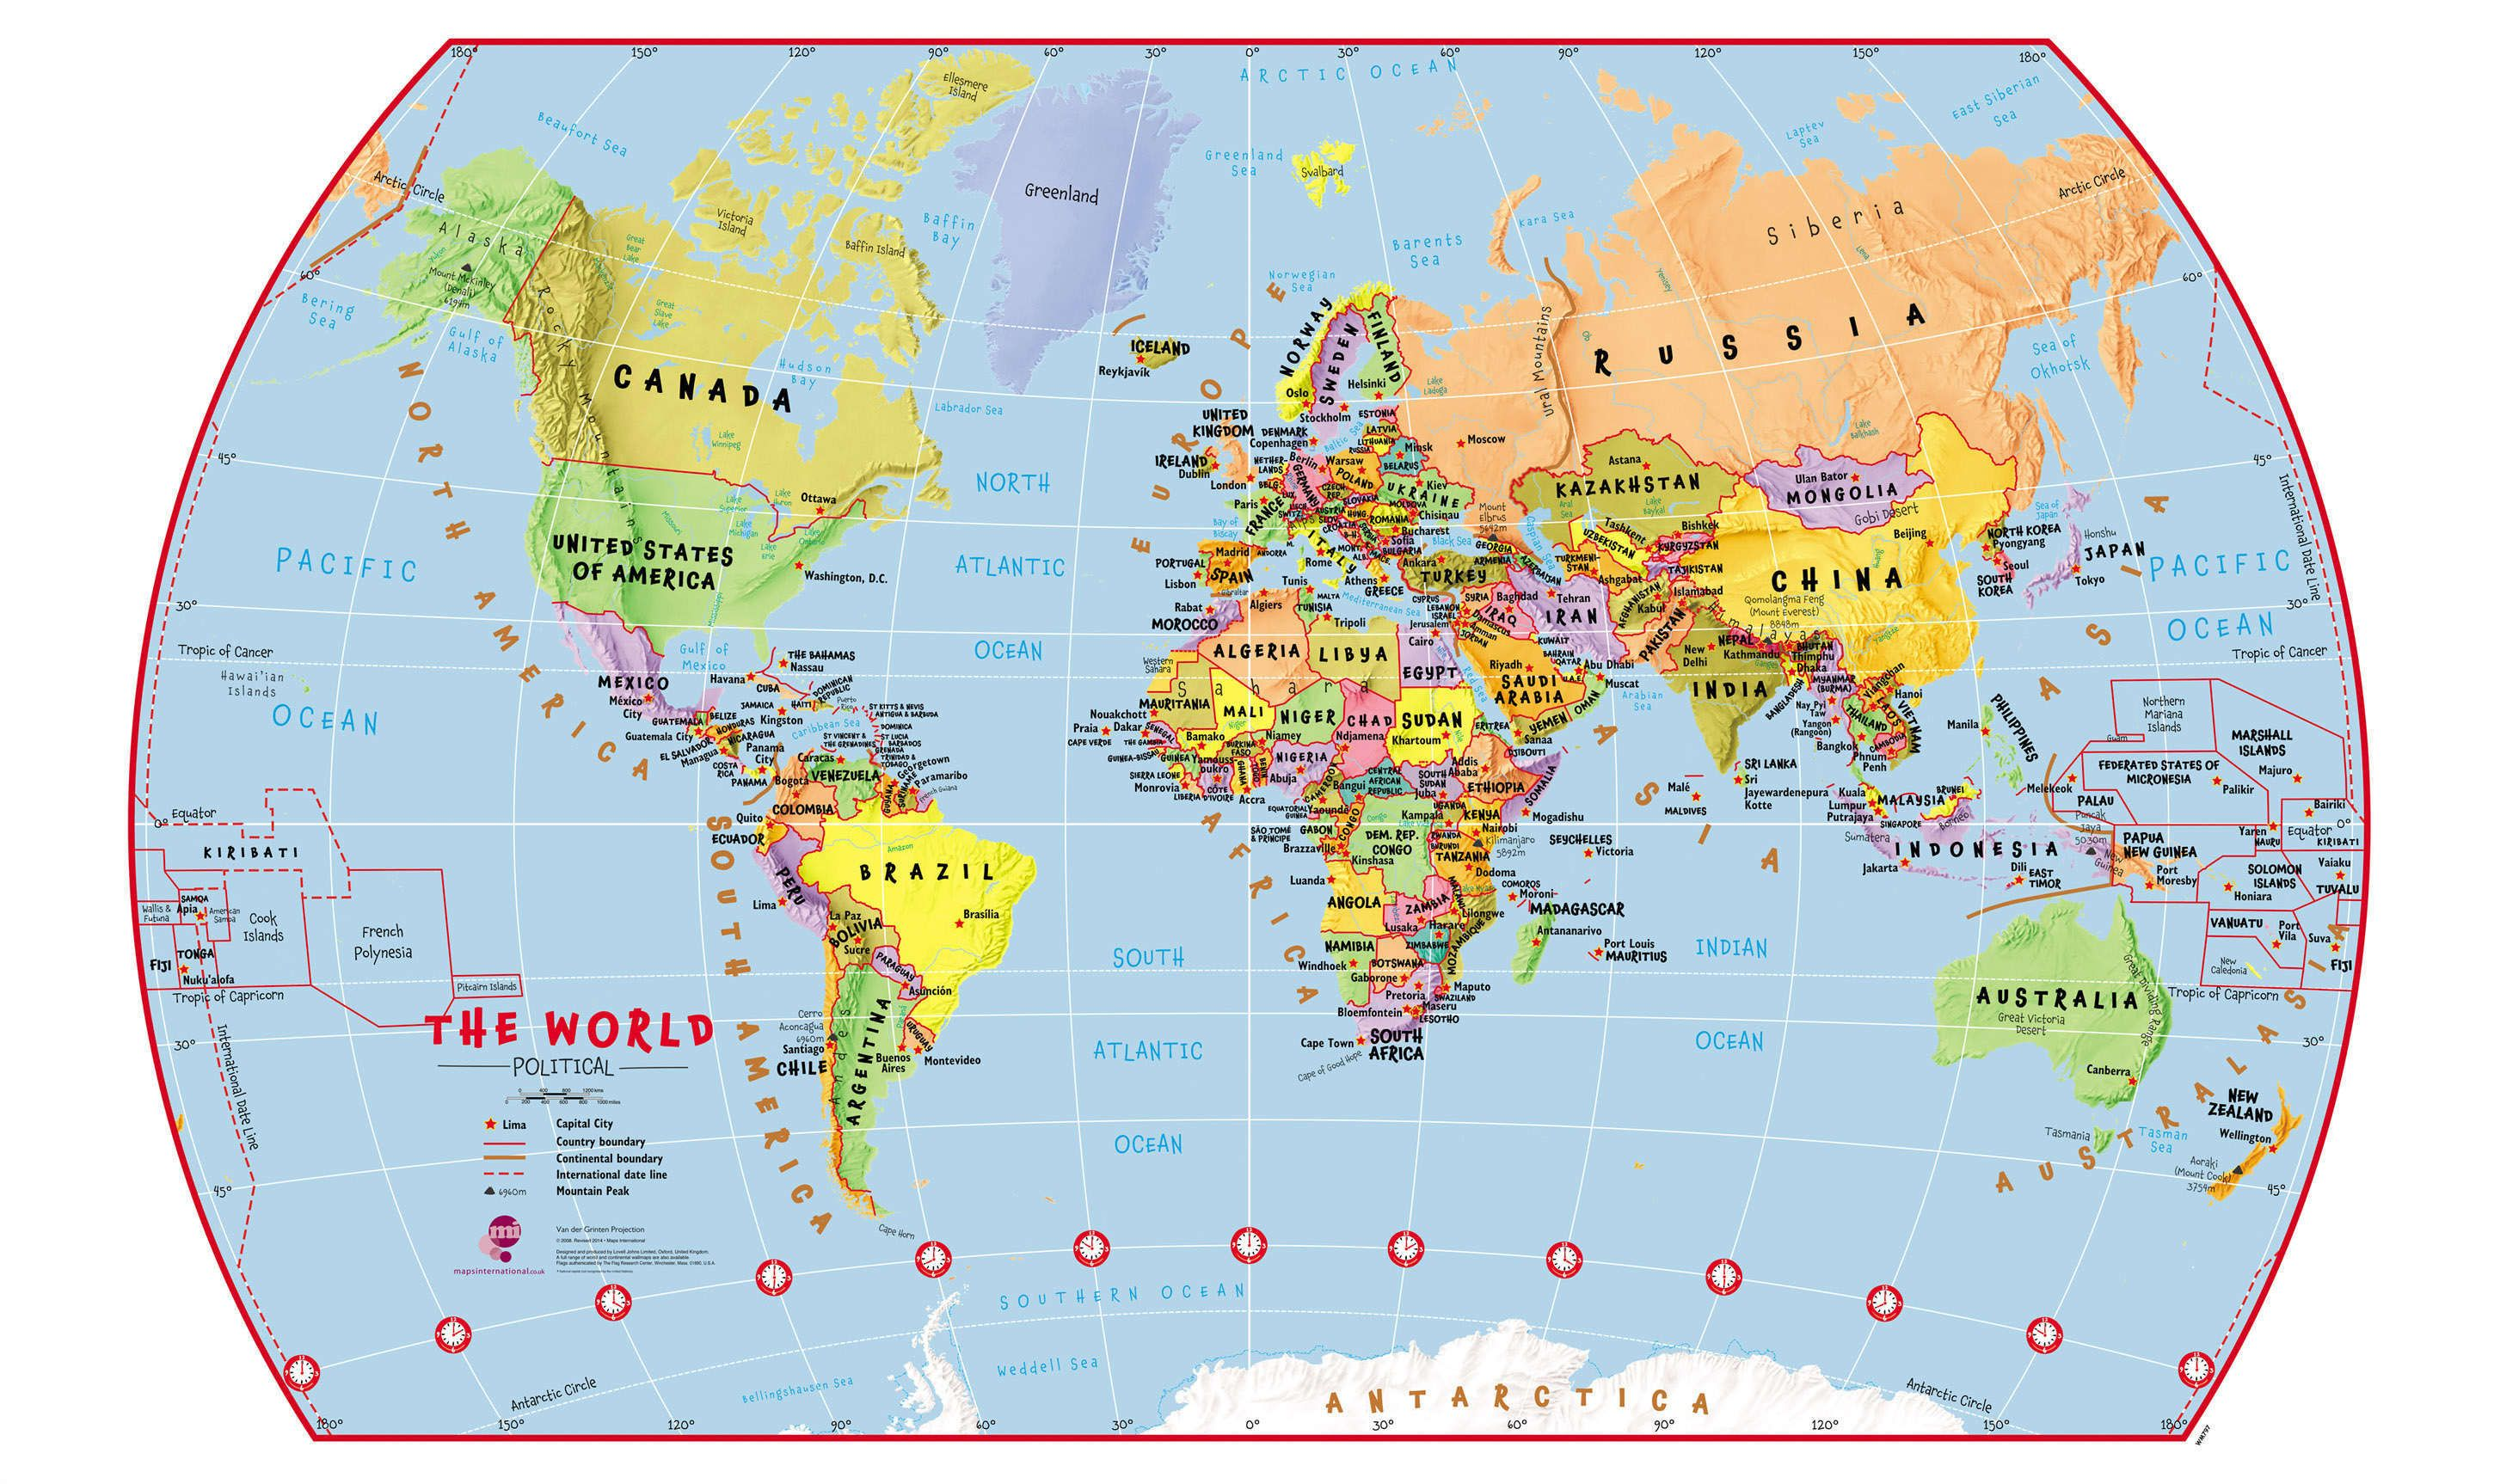 World Political Map For Students